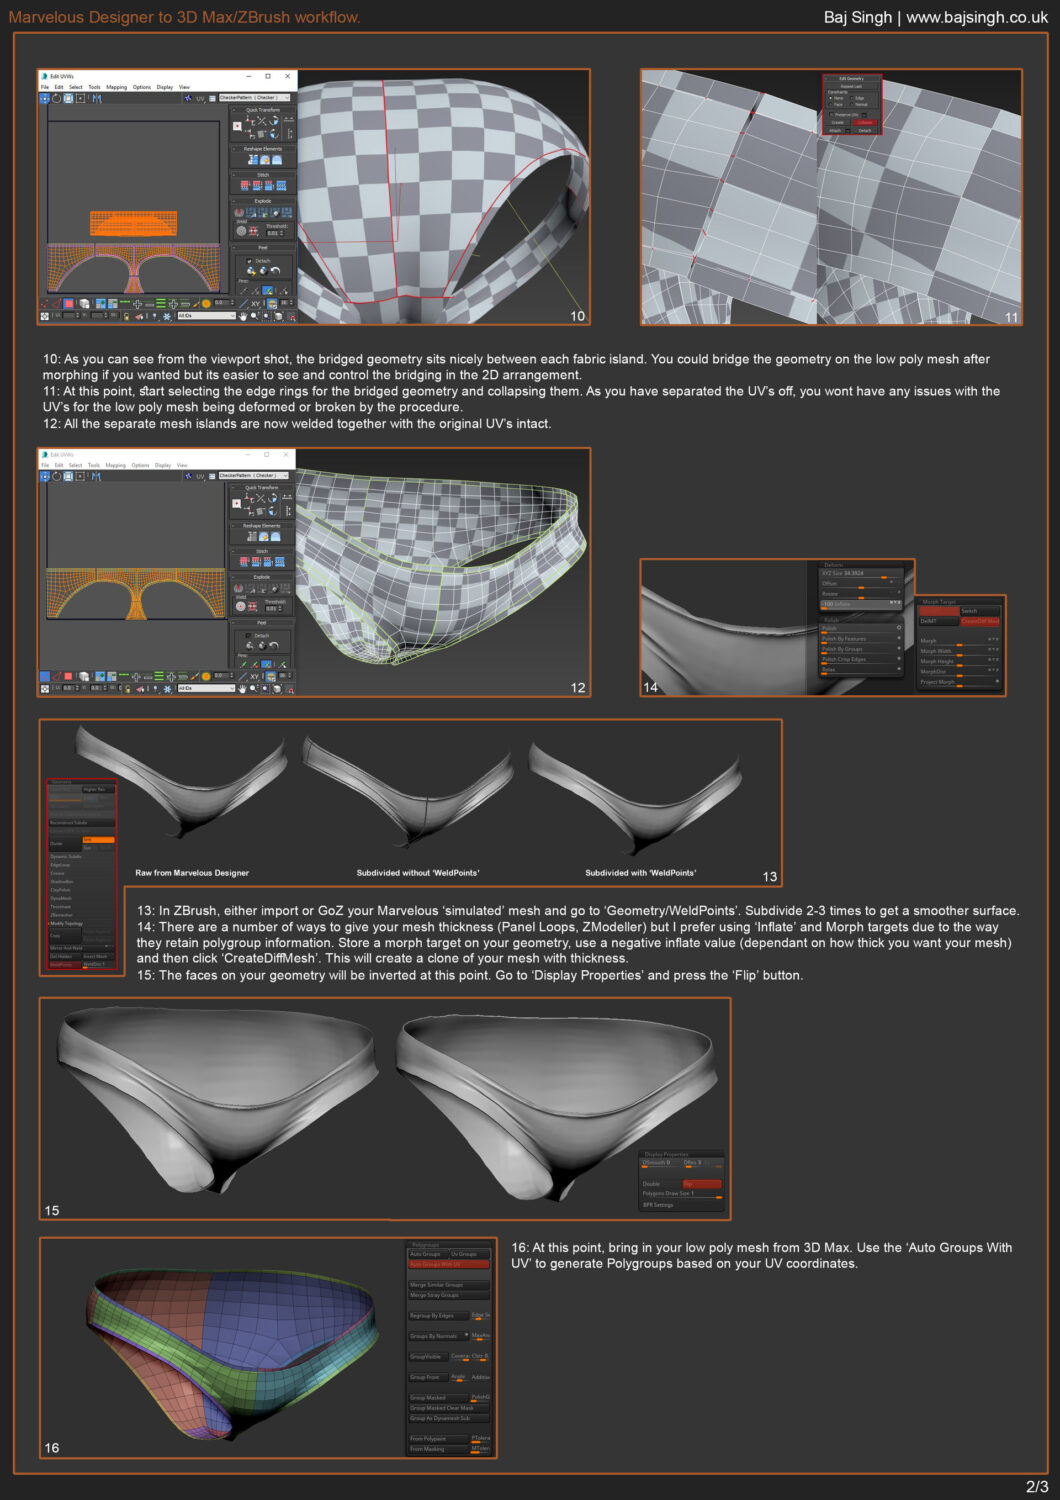 Marvelous Designer to 3D Max/ZBrush workflow _ By Baj Singh Marvelous Designer Marvelous Designer,3D Max